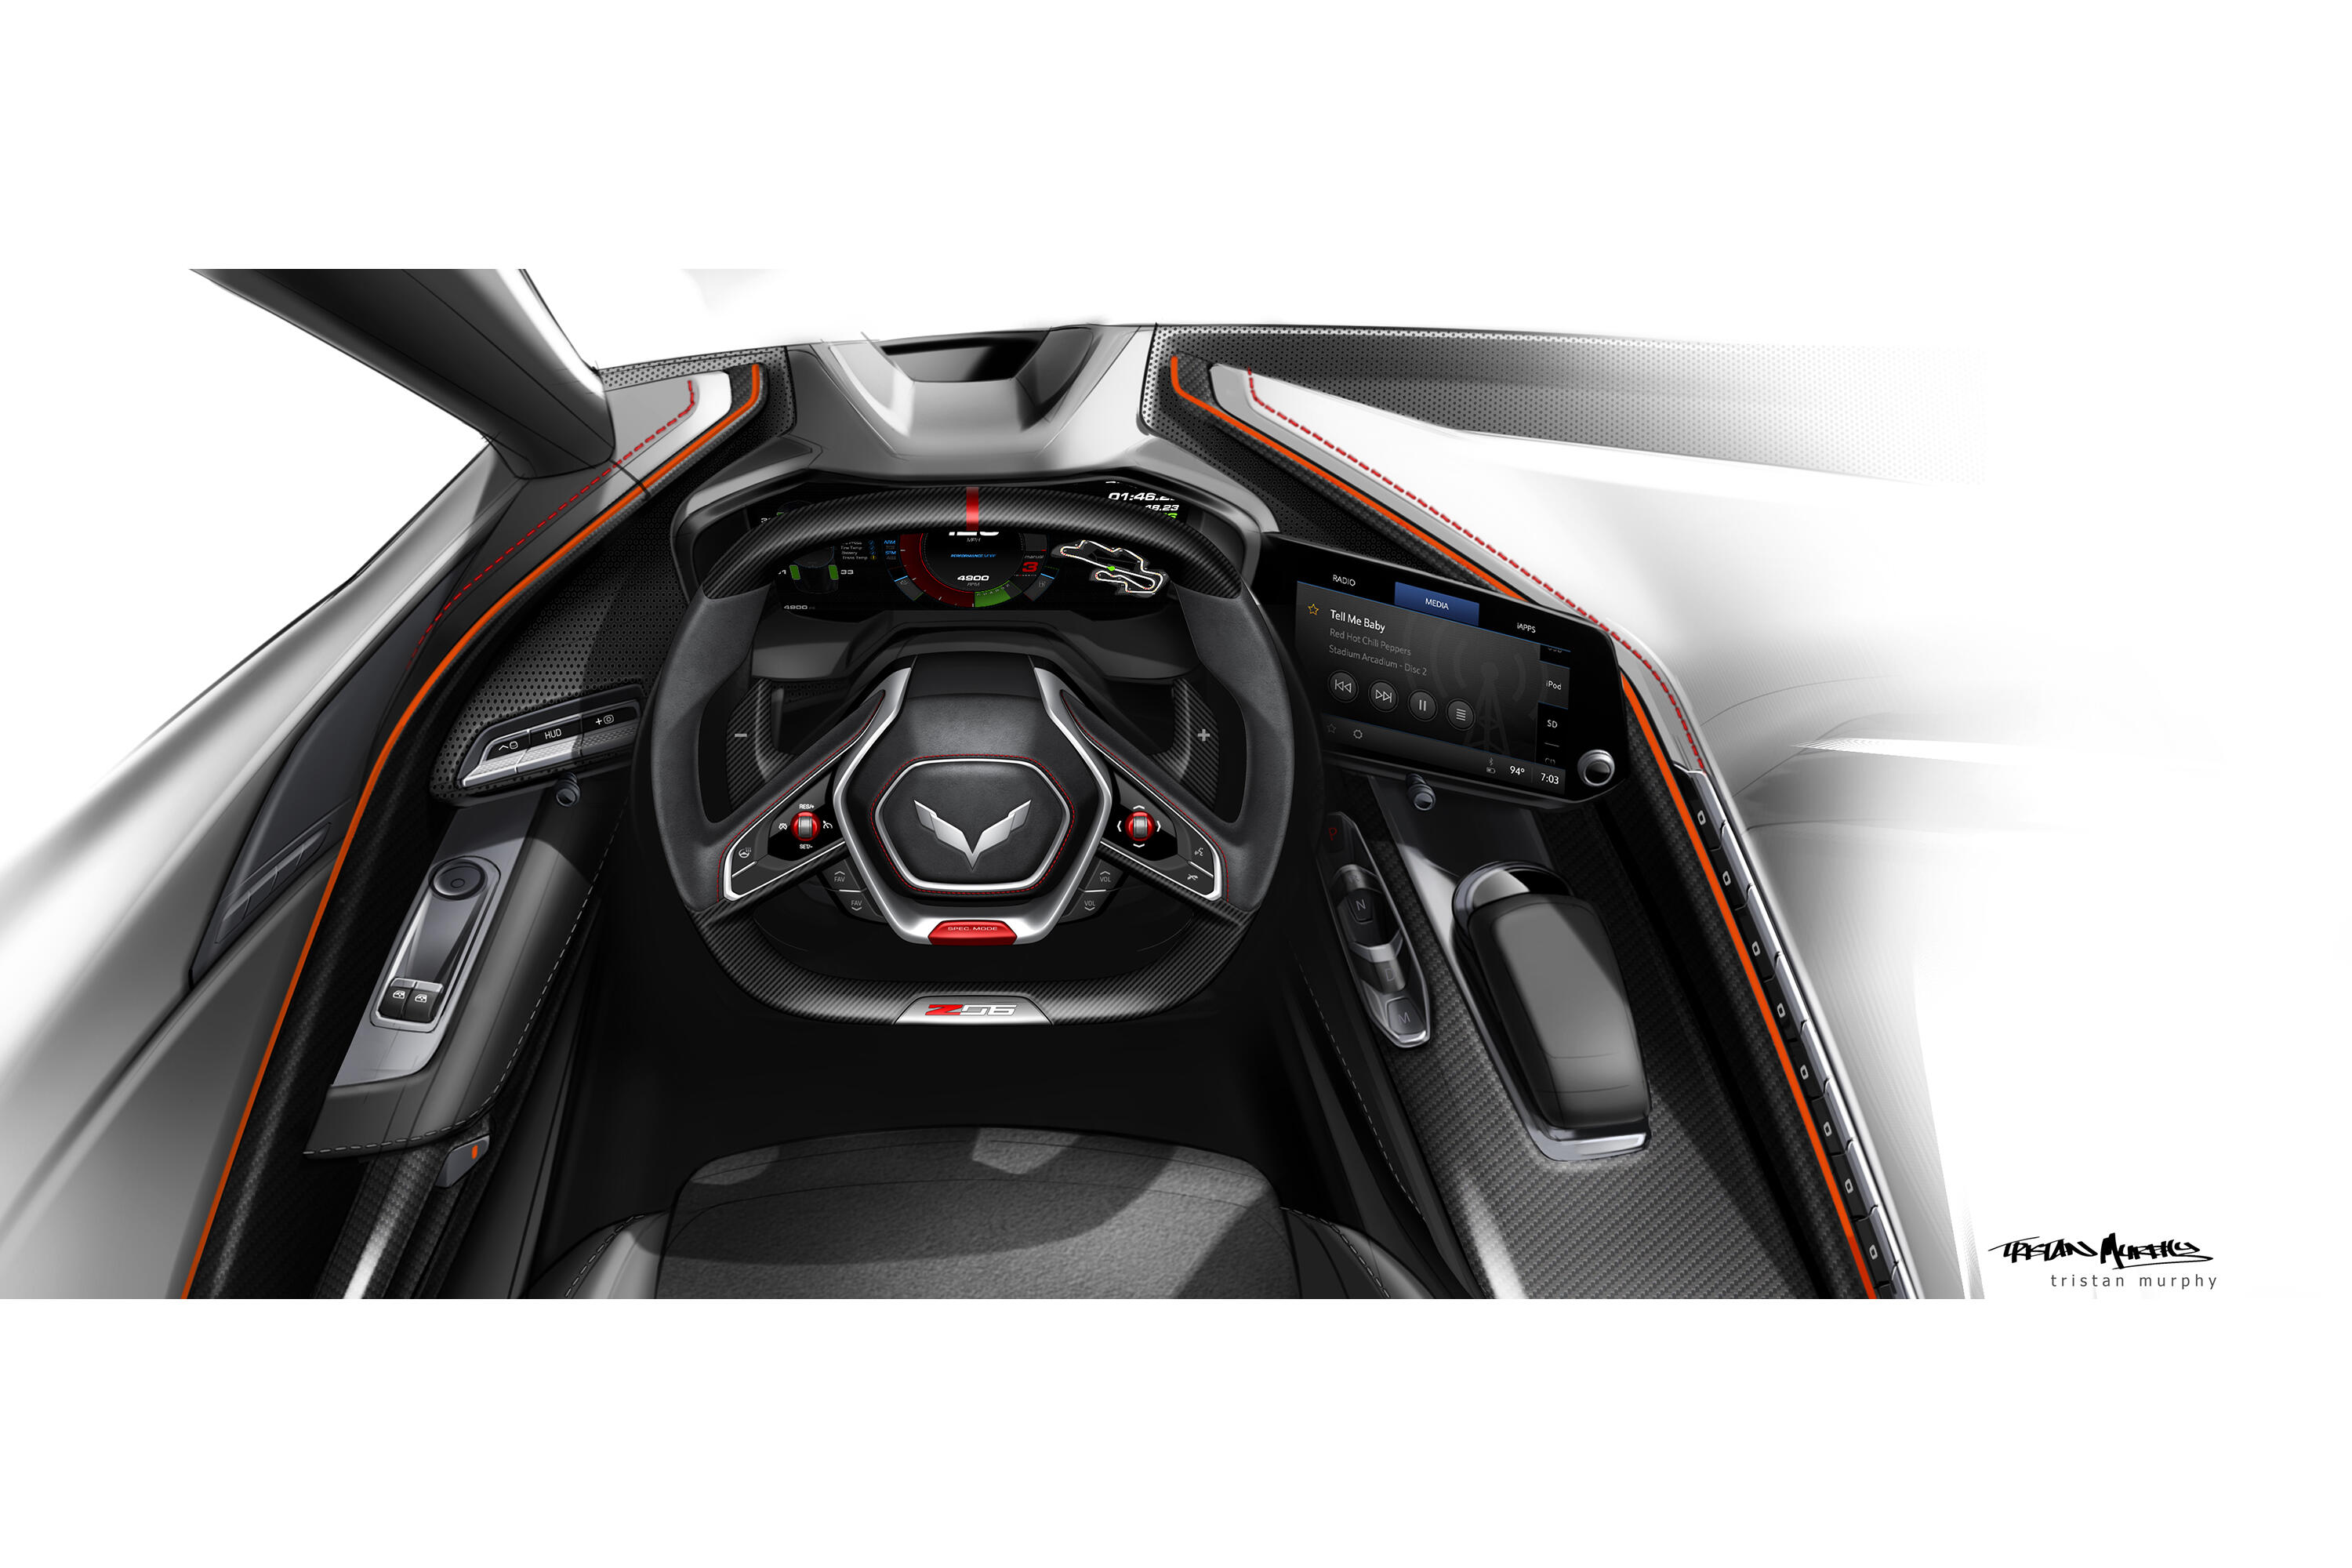 Possible sketch of Chevy Corvette Z06 interior